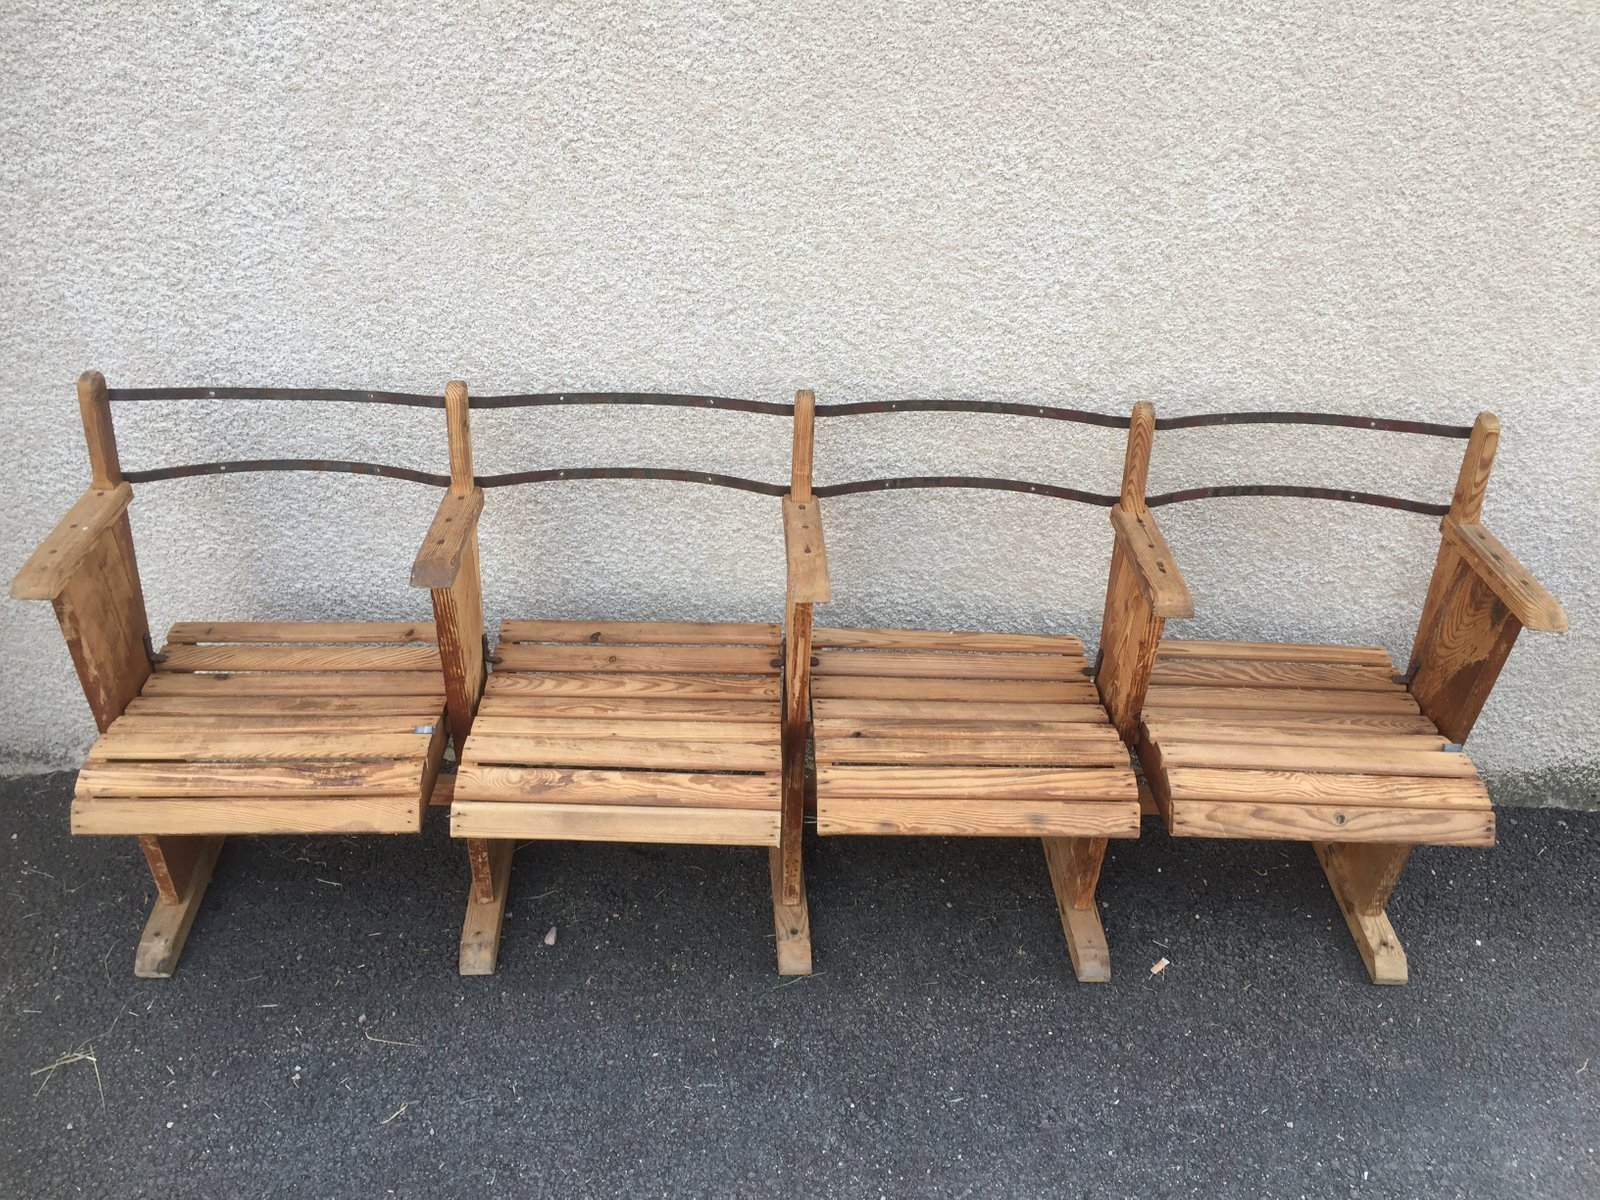 Antique Industrial Wooden Bench Antique Wooden Bench73